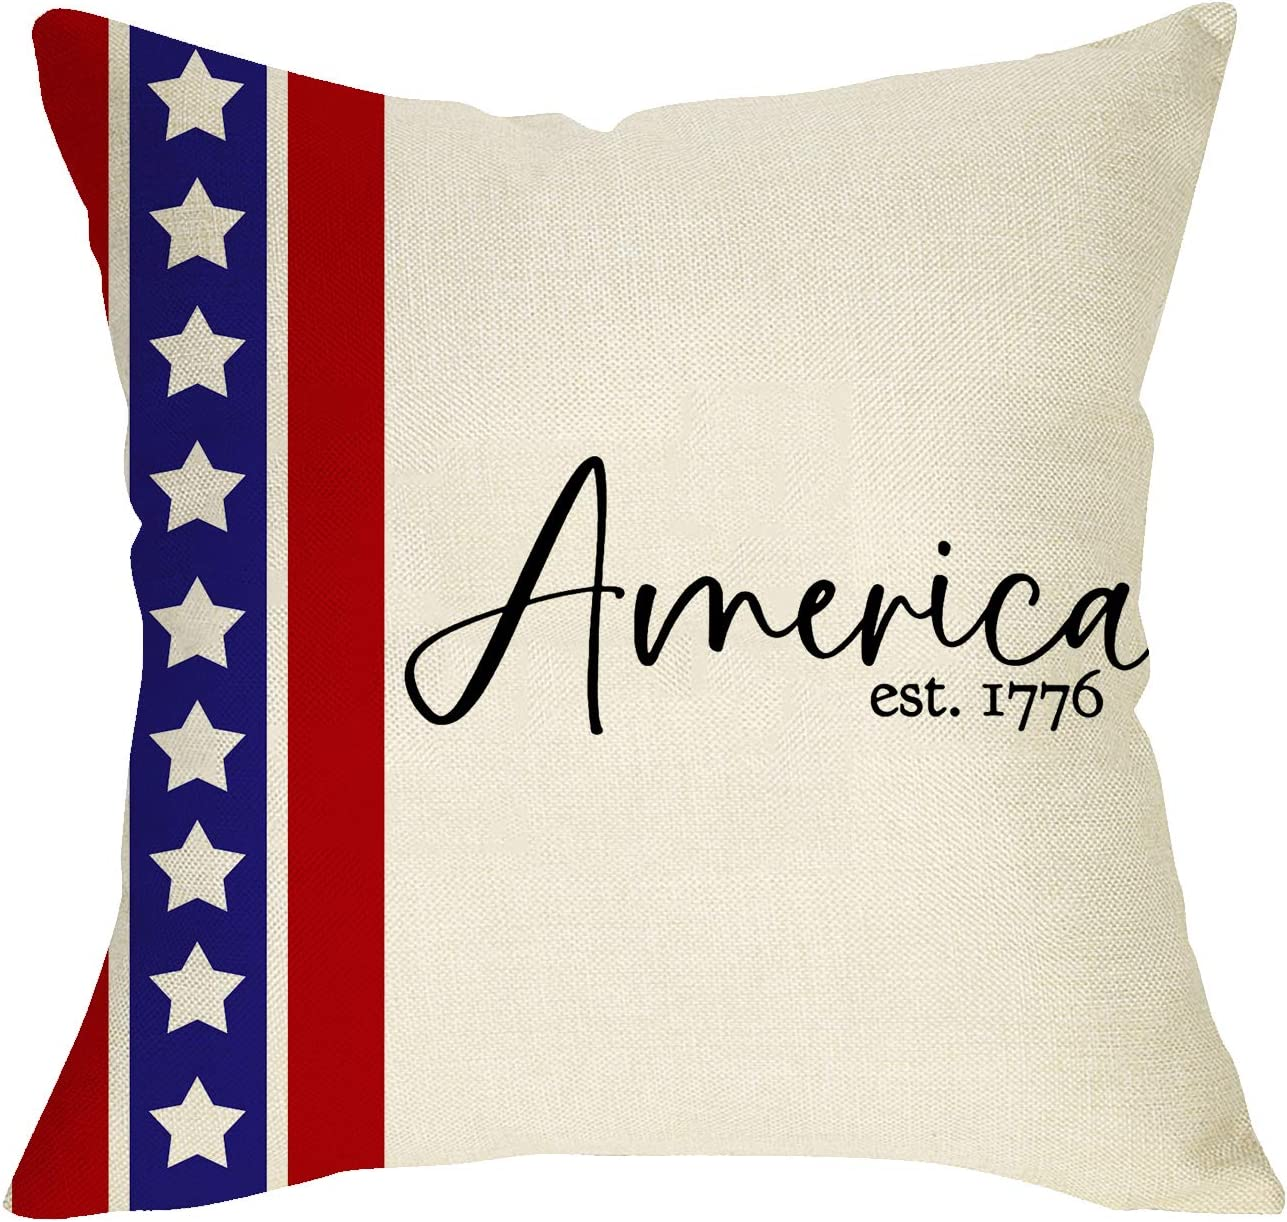 Softxpp America est.1776 Decorative Throw Pillow Cover, 4th of July Holiday Cushion Case USA Flag Stars Patriotic Sign, Home Spring Summer Decoration Pillowcase Decor 18 x 18 Inch Cotton Linen